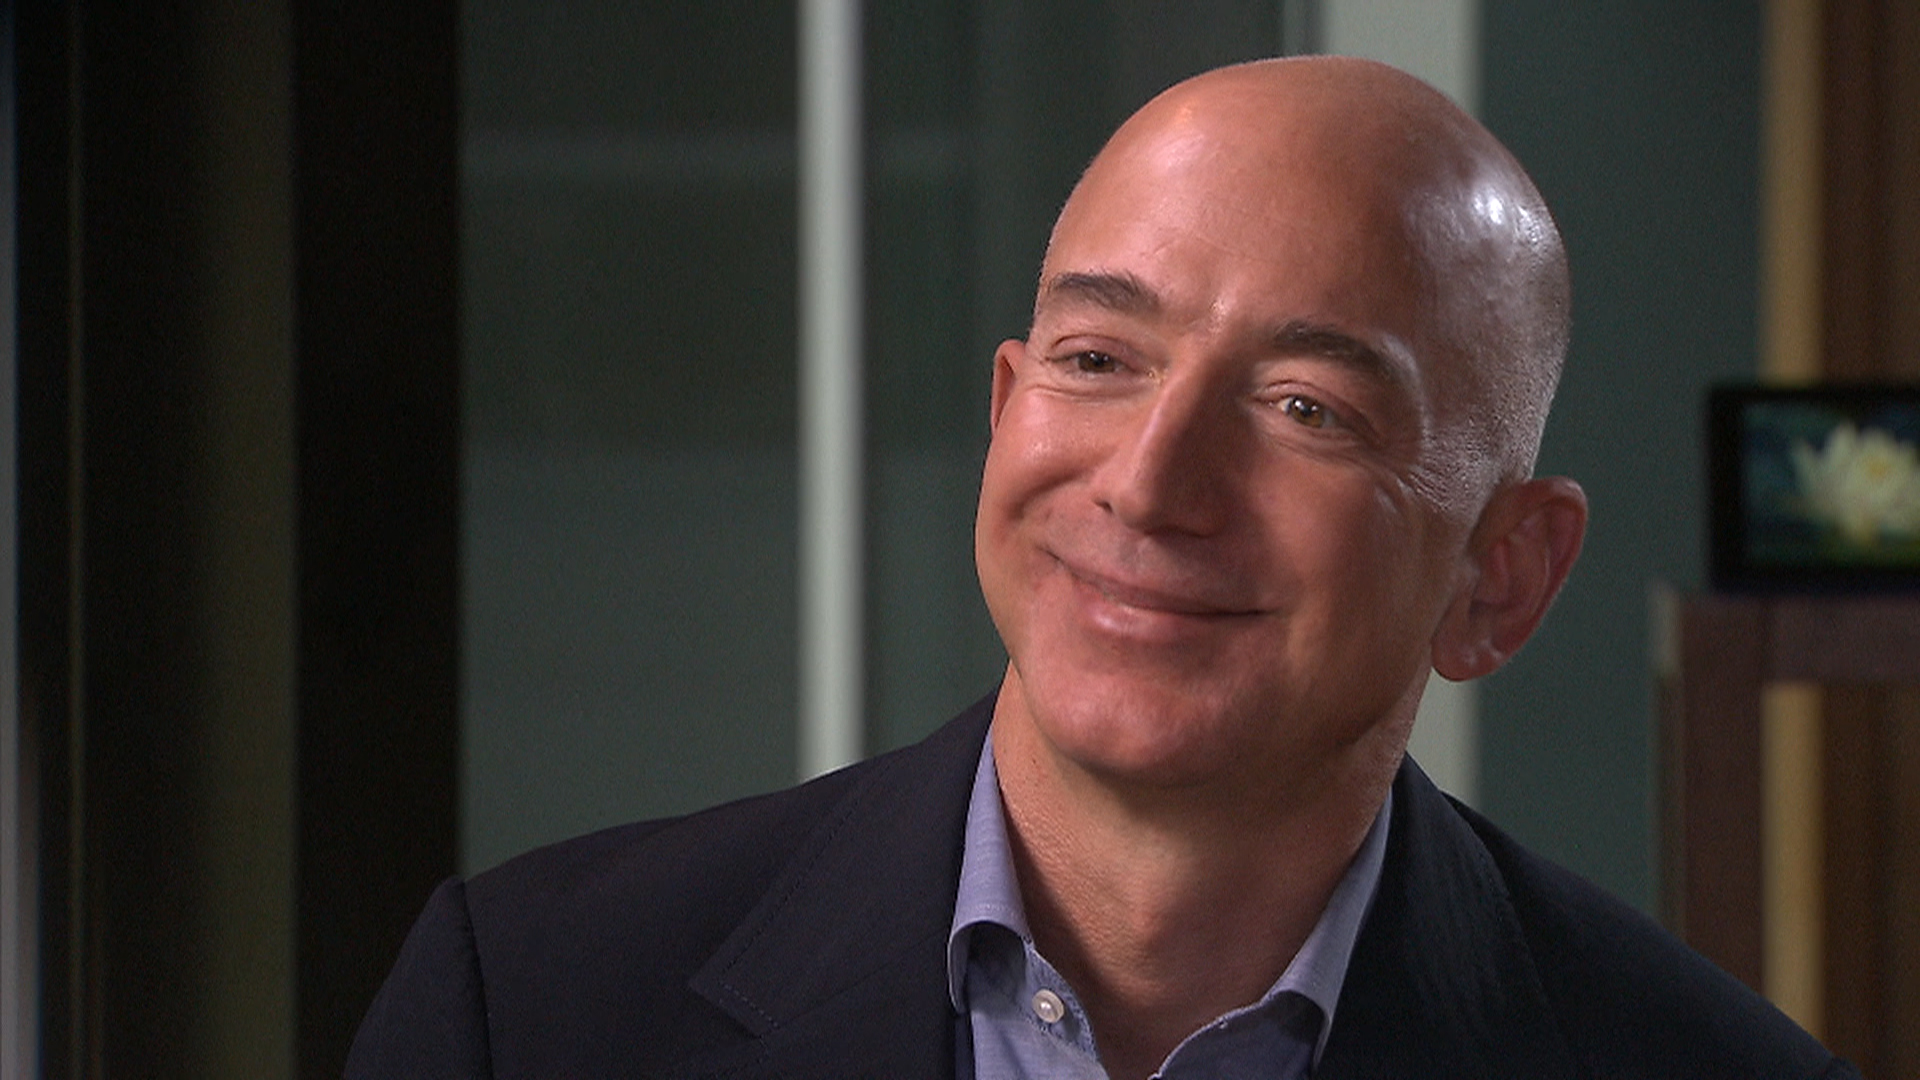 Jeff Bezos On Plans To Launch People Into Space